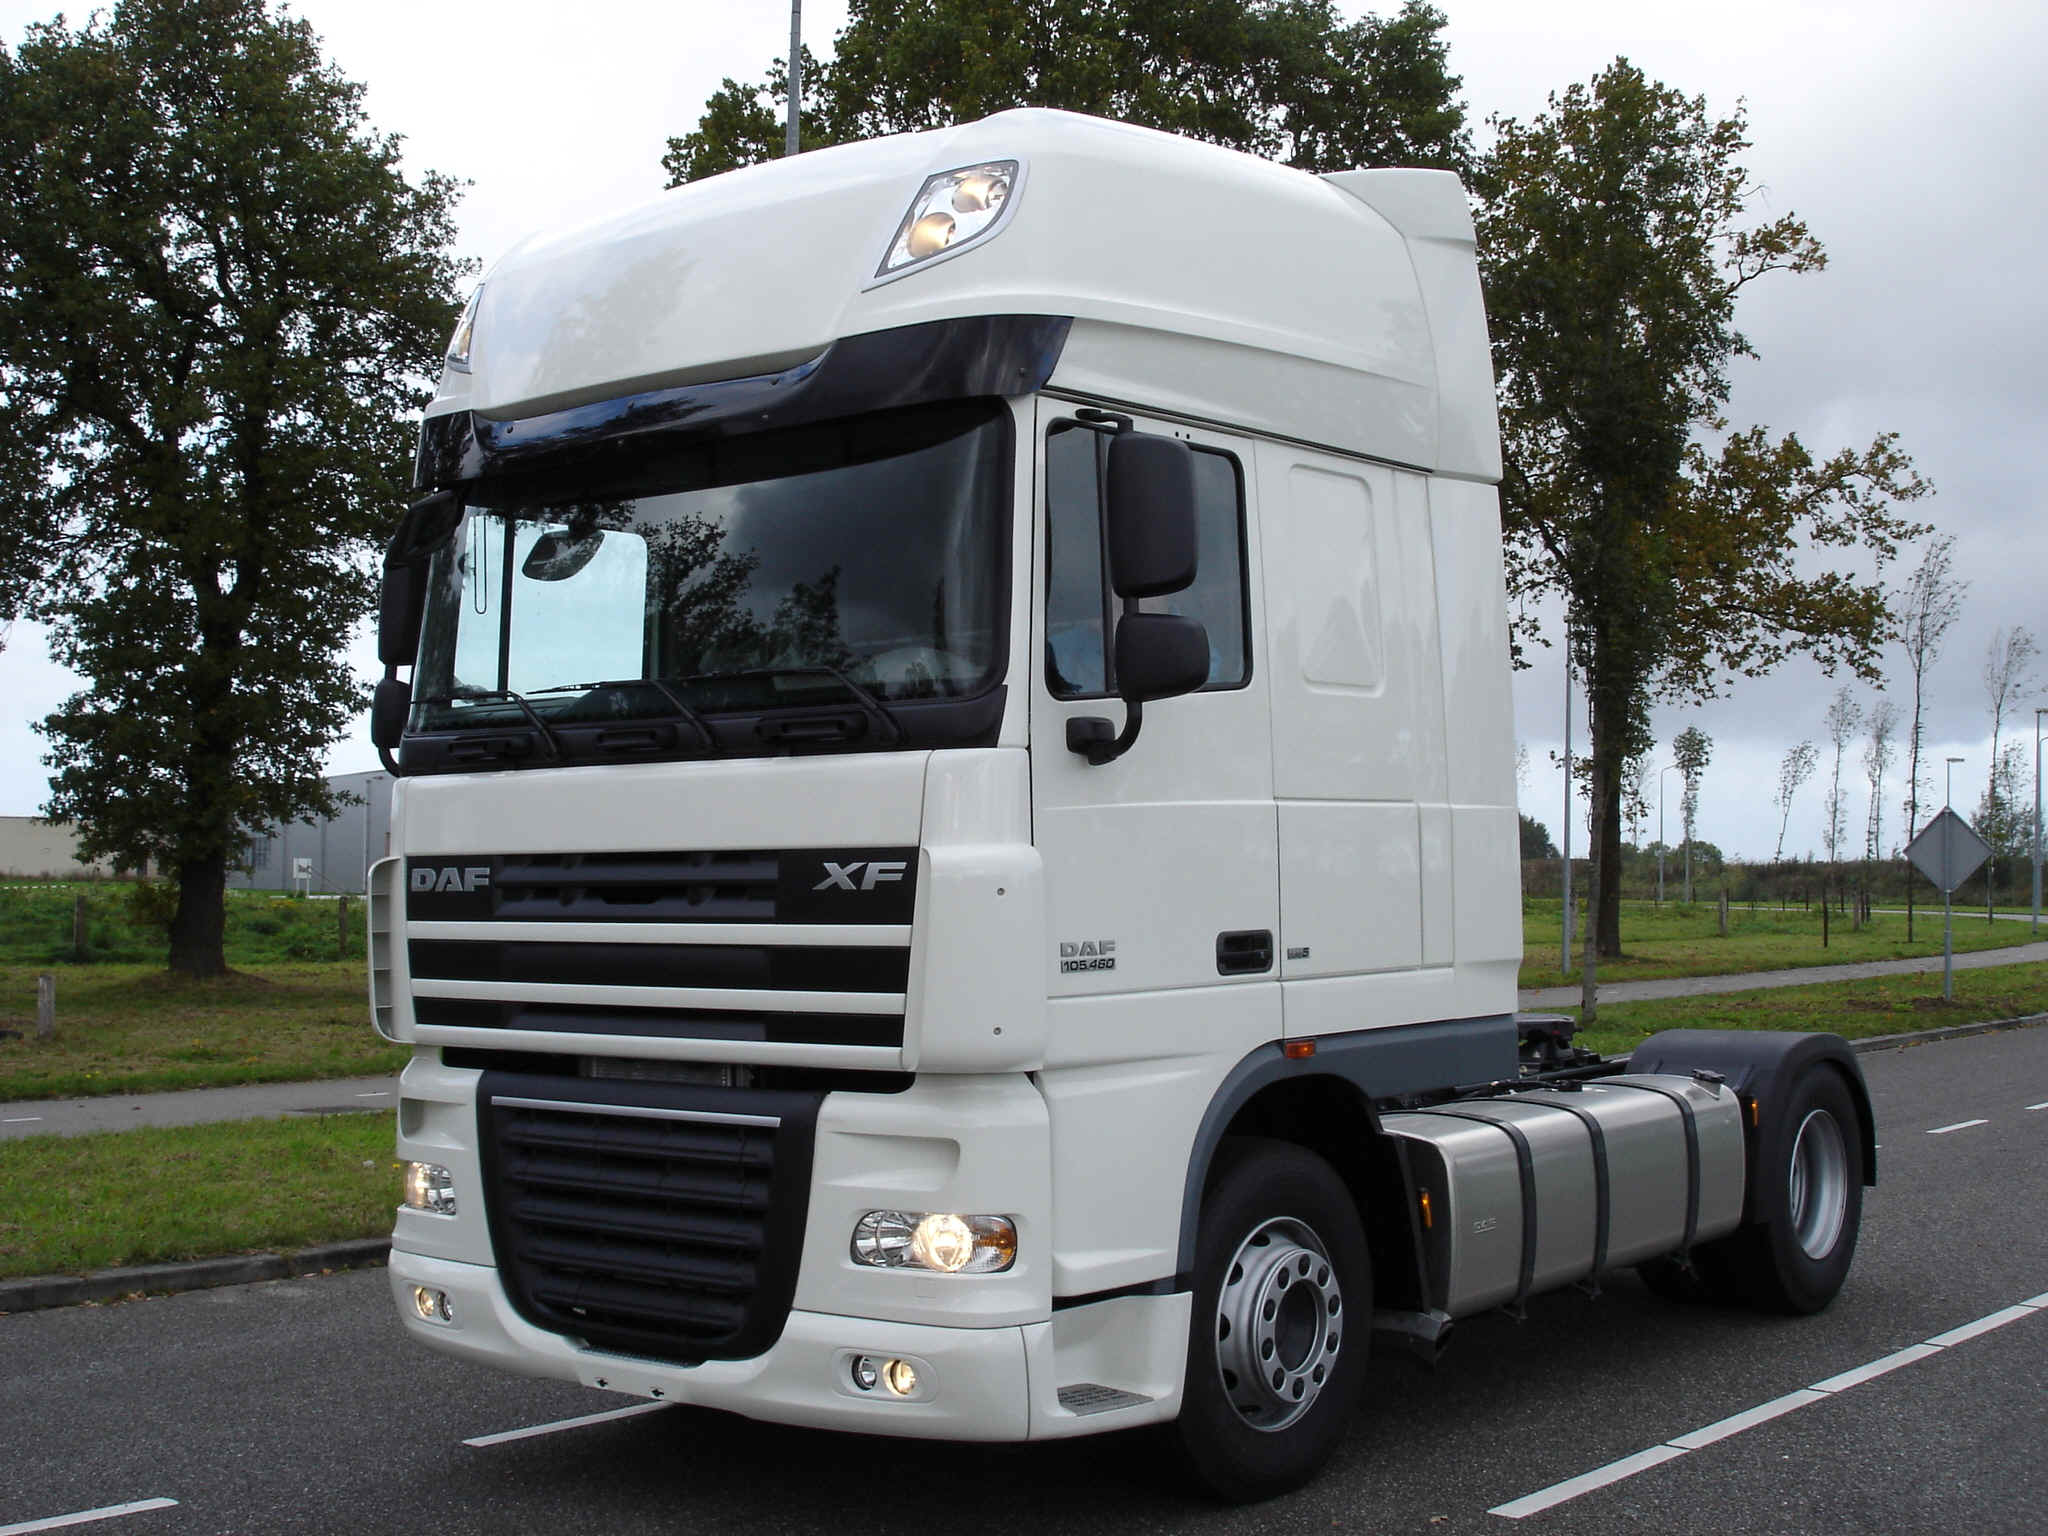 daf xf 460 picture 10 reviews news specs buy car. Black Bedroom Furniture Sets. Home Design Ideas